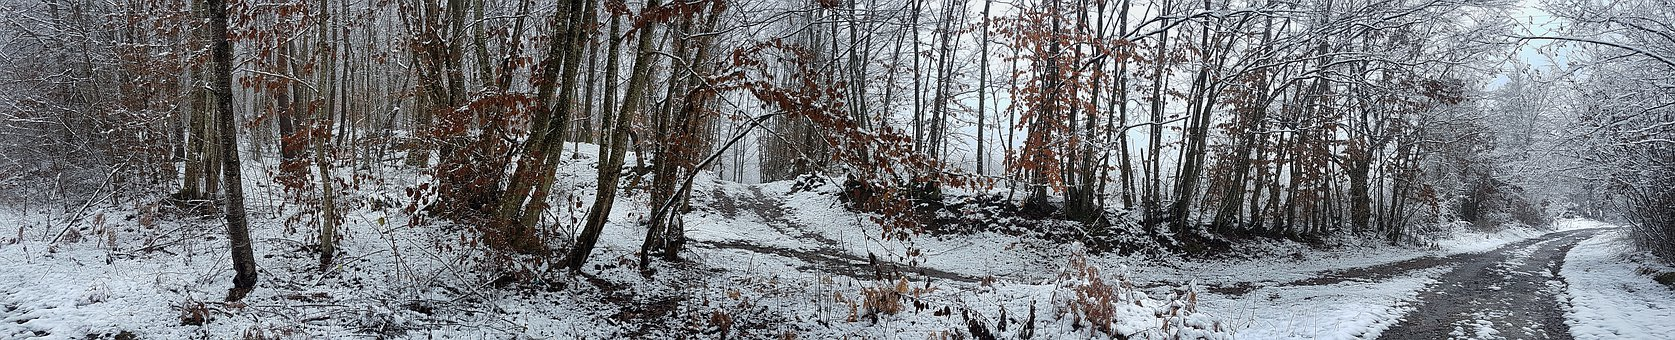 Snow, Outdoors, Wintry, Alone, Rock, Winter, Mountains